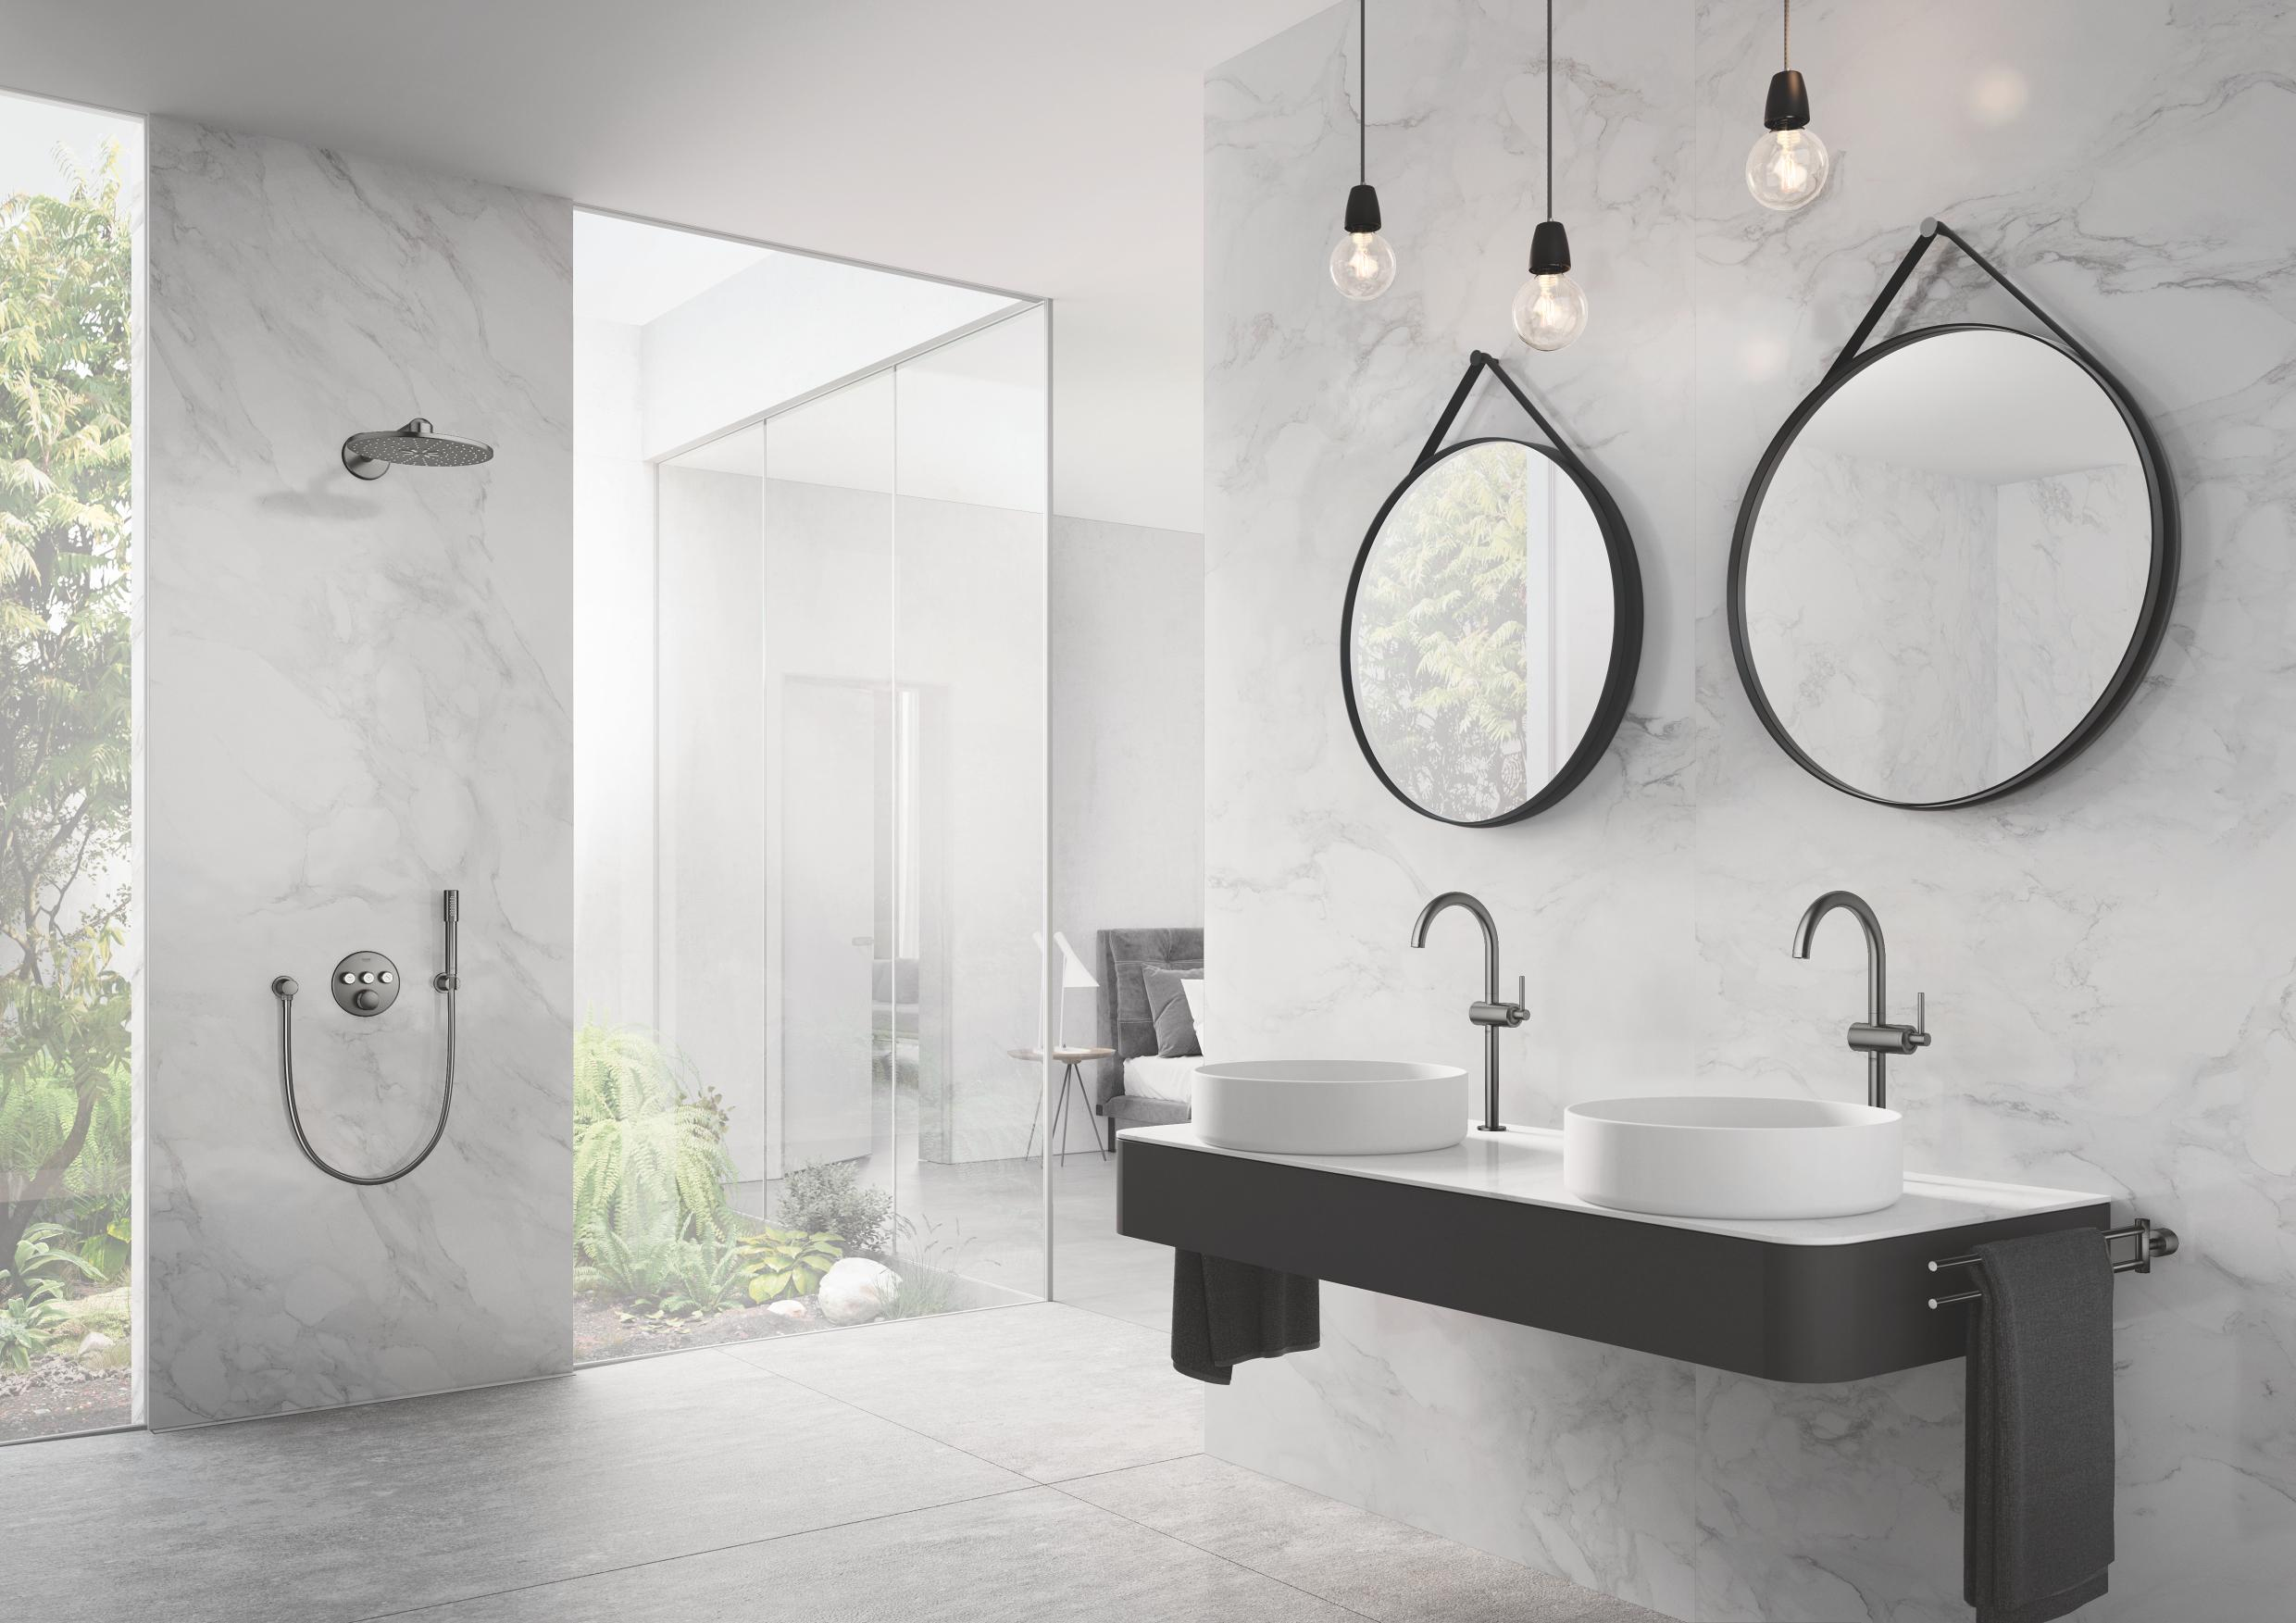 Best grohe bathroom images in